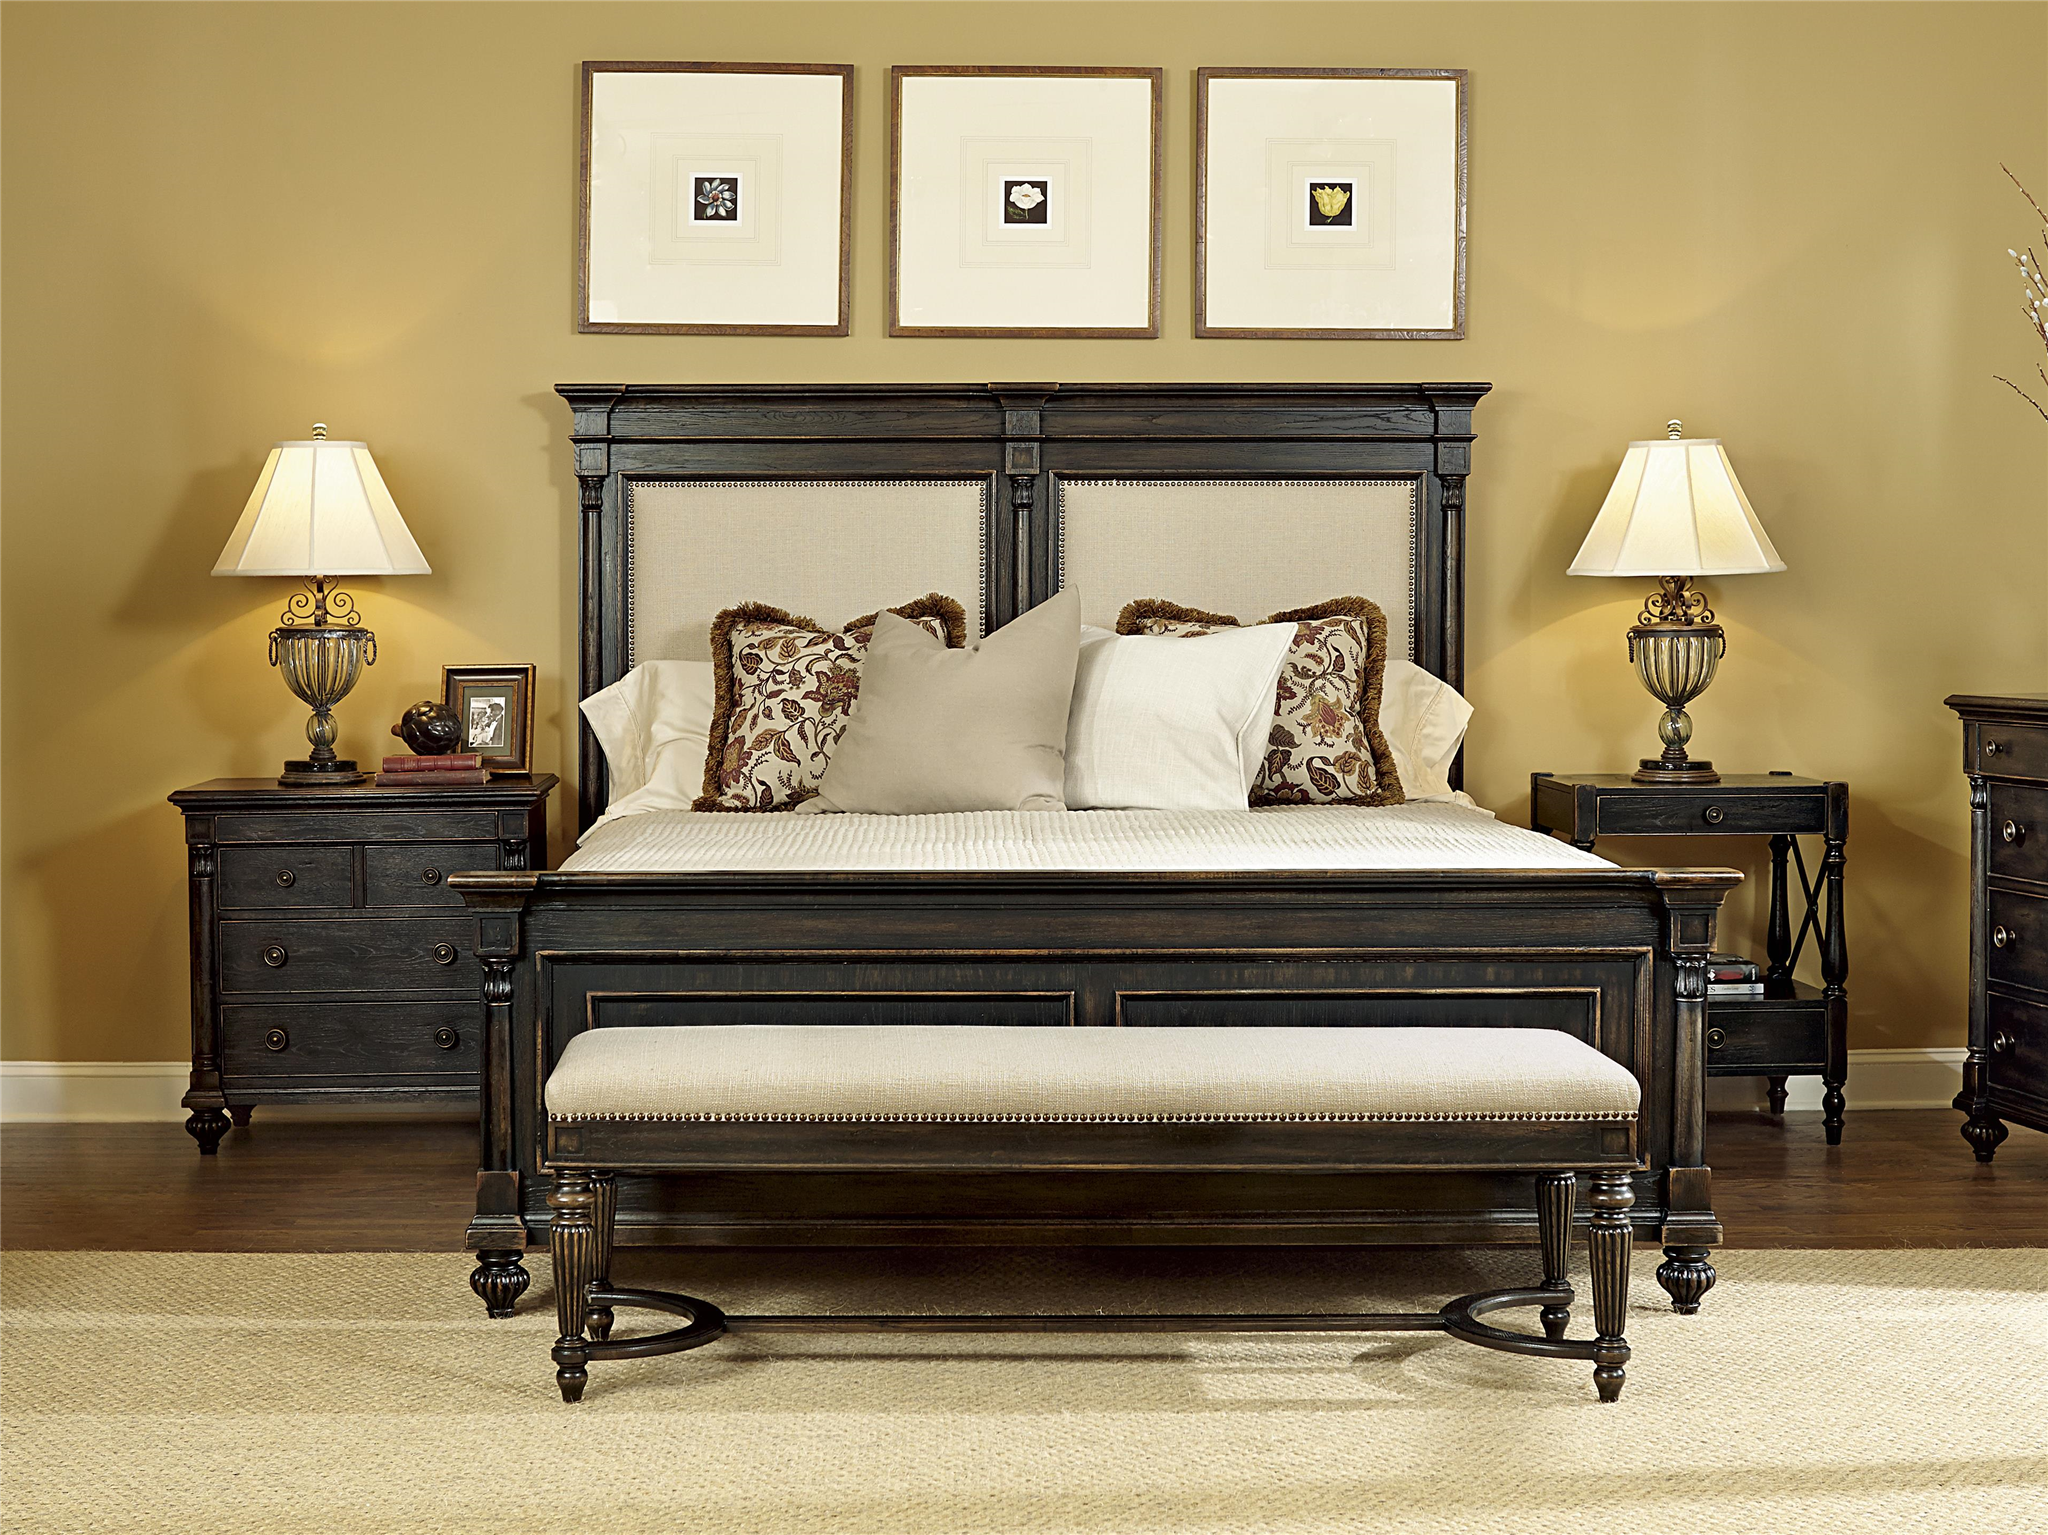 Doerr Furniture - Braemore Bed Bench - Benches - Bedroom